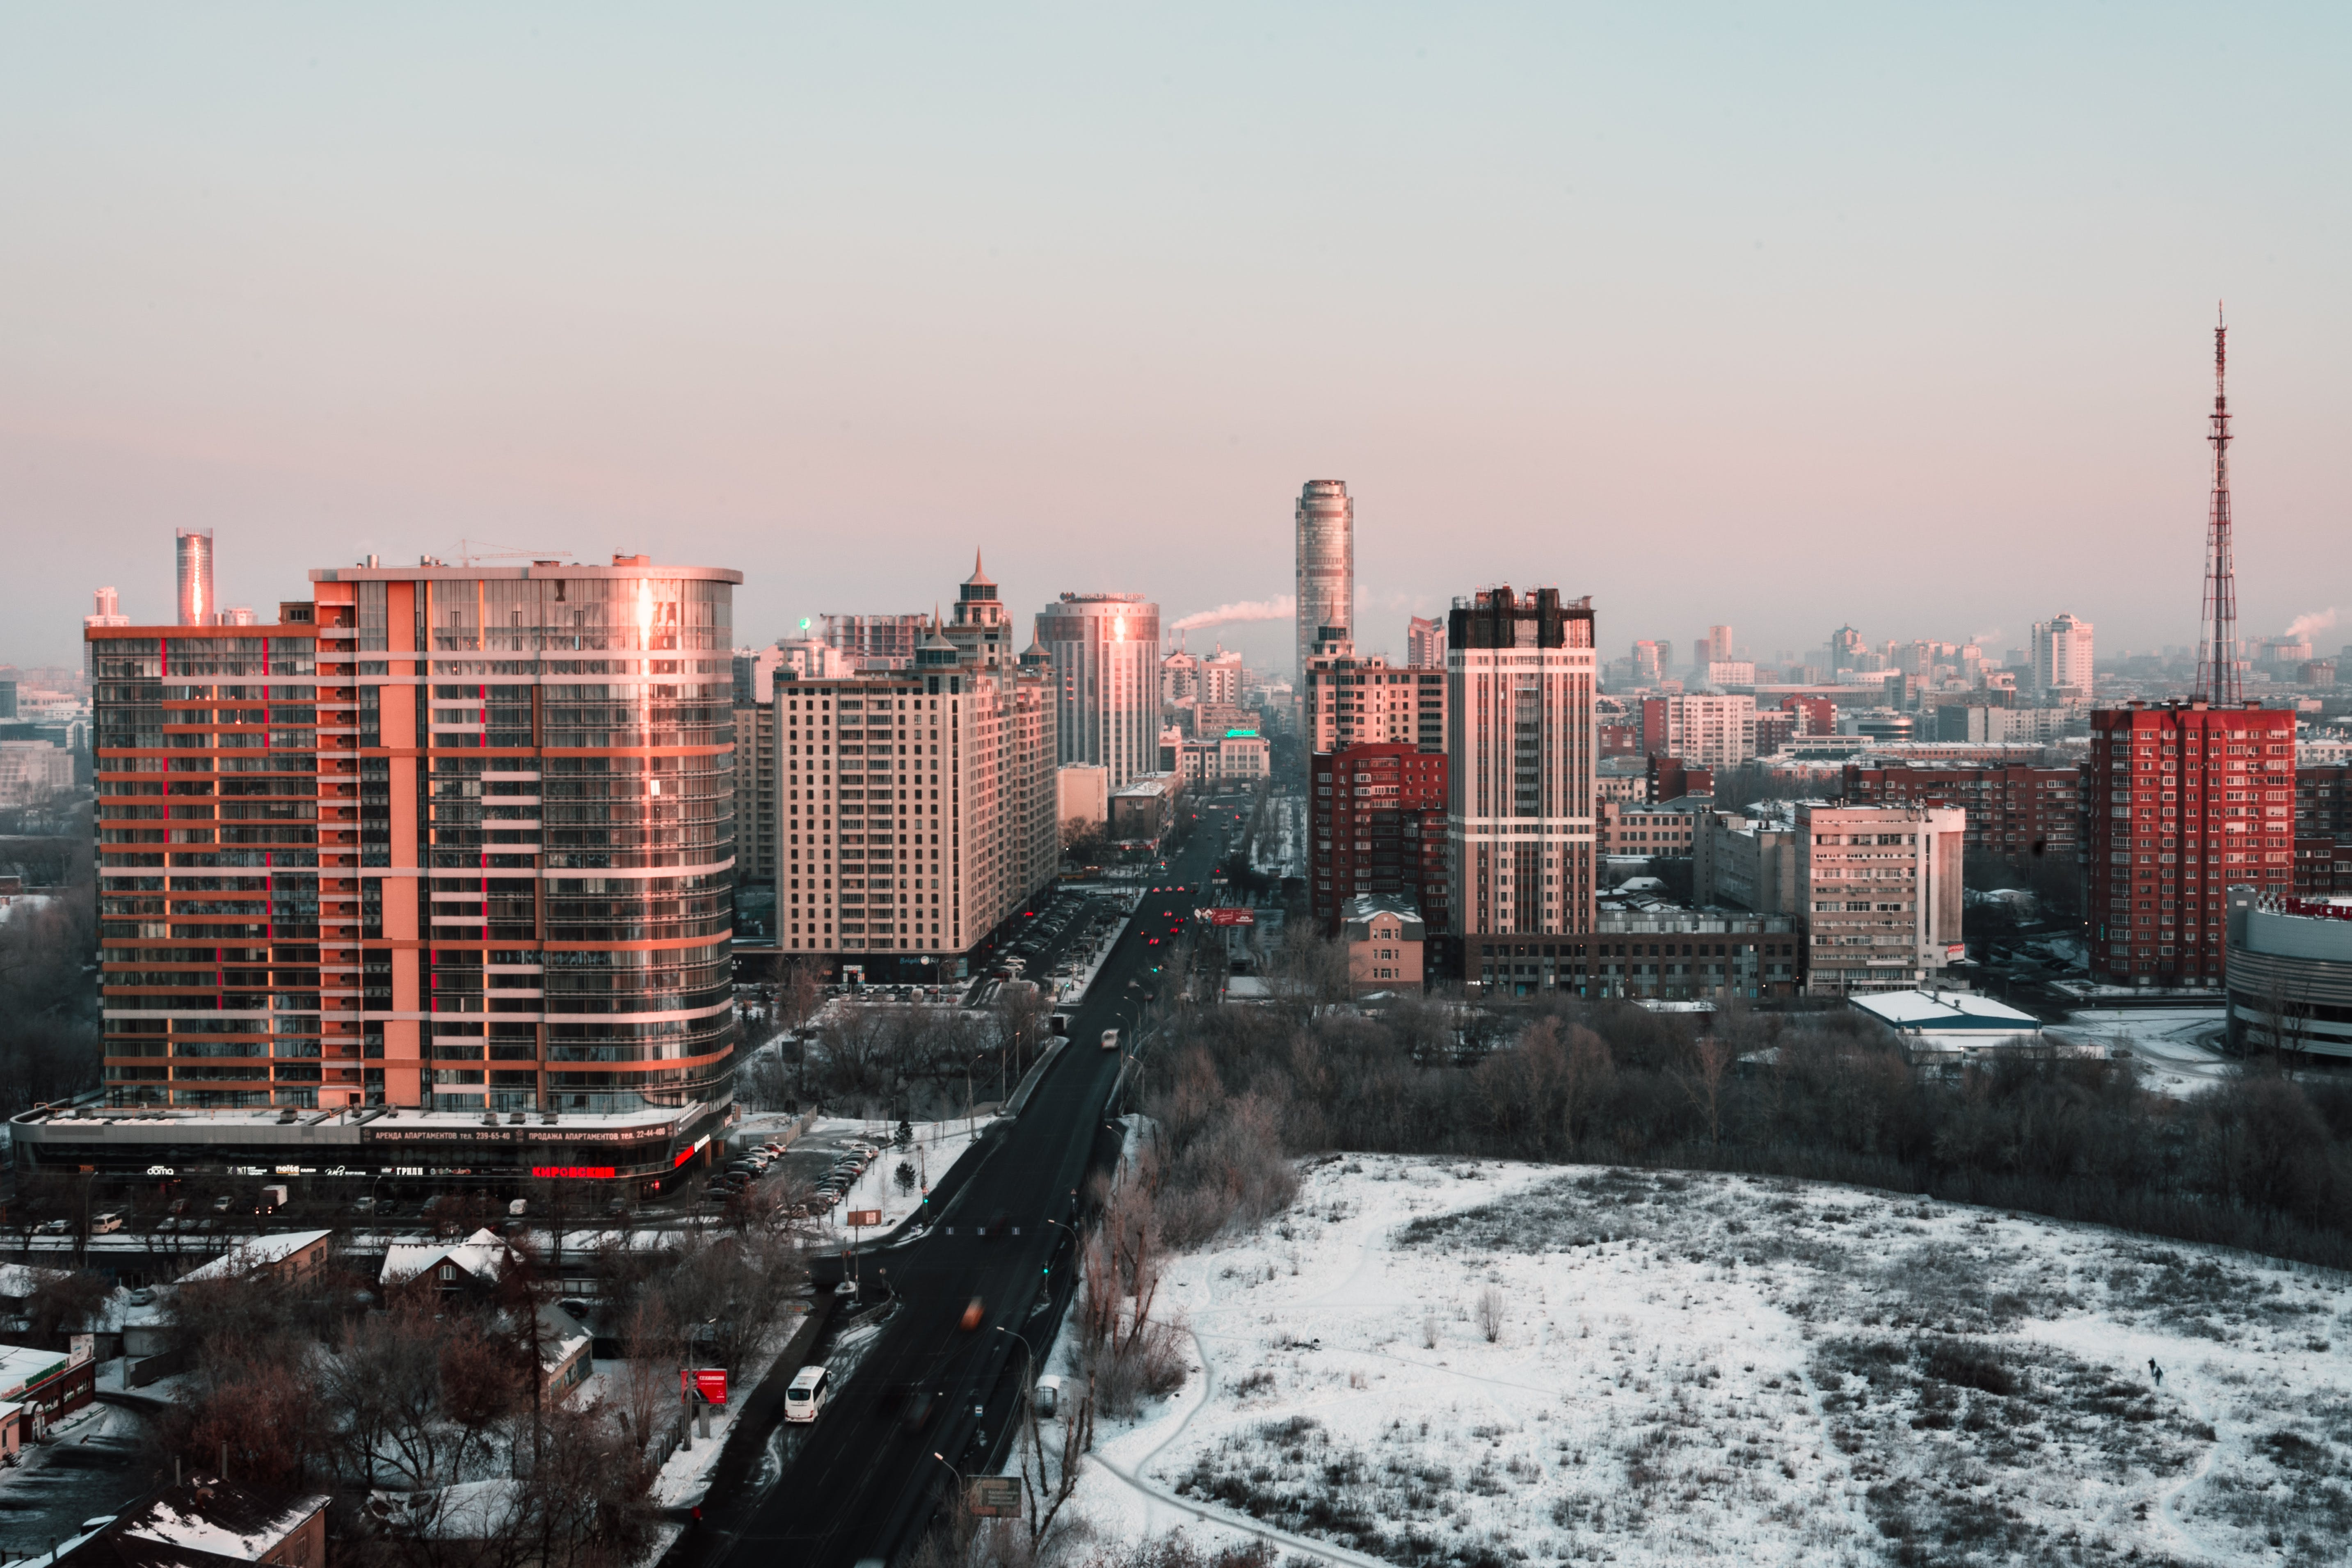 White and Red High-rise Building during Winter Season